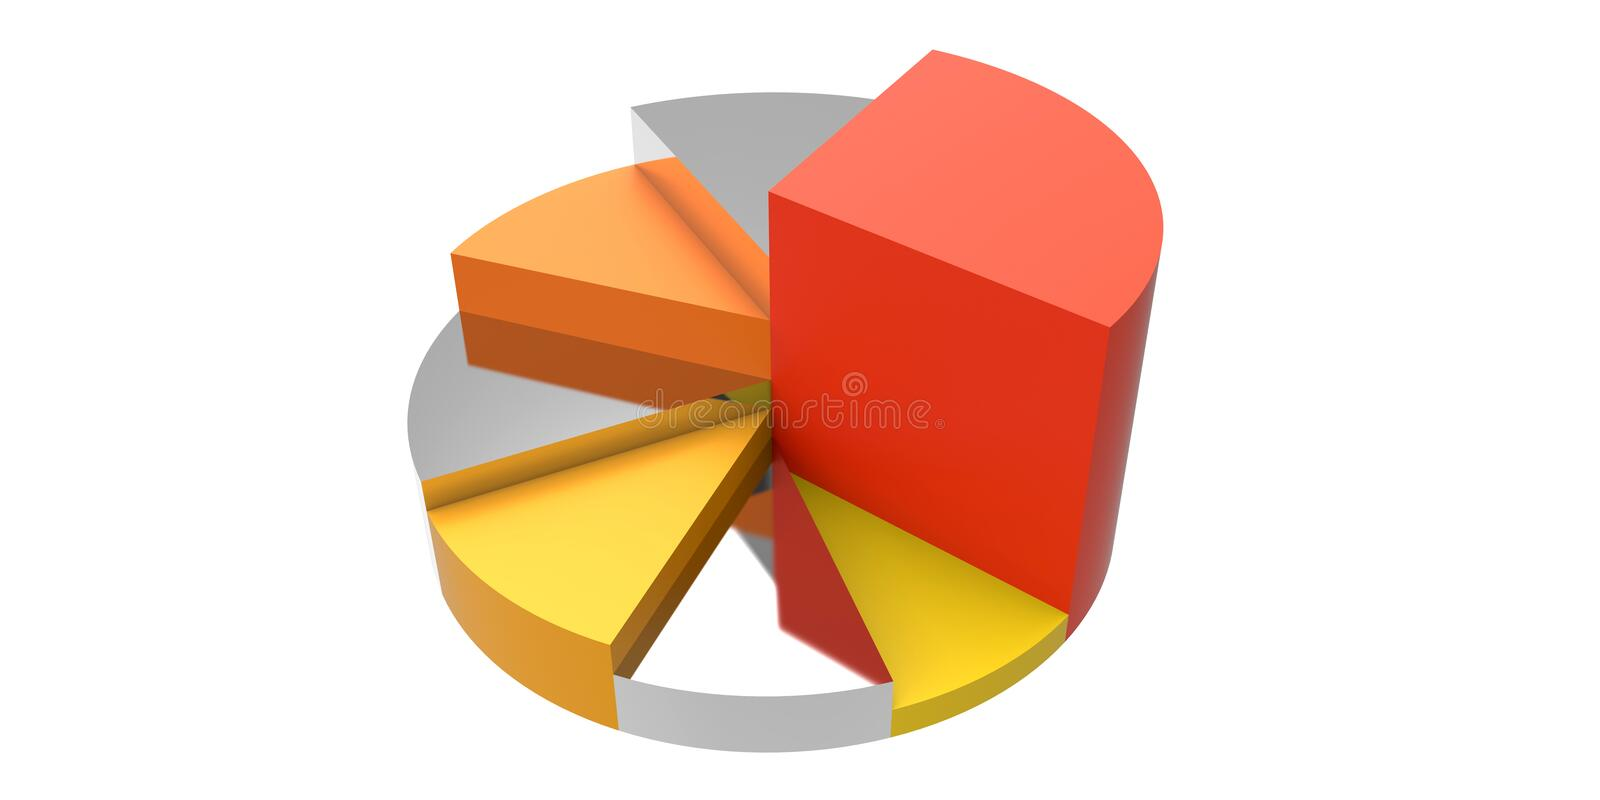 Reflective pie chart vector illustration